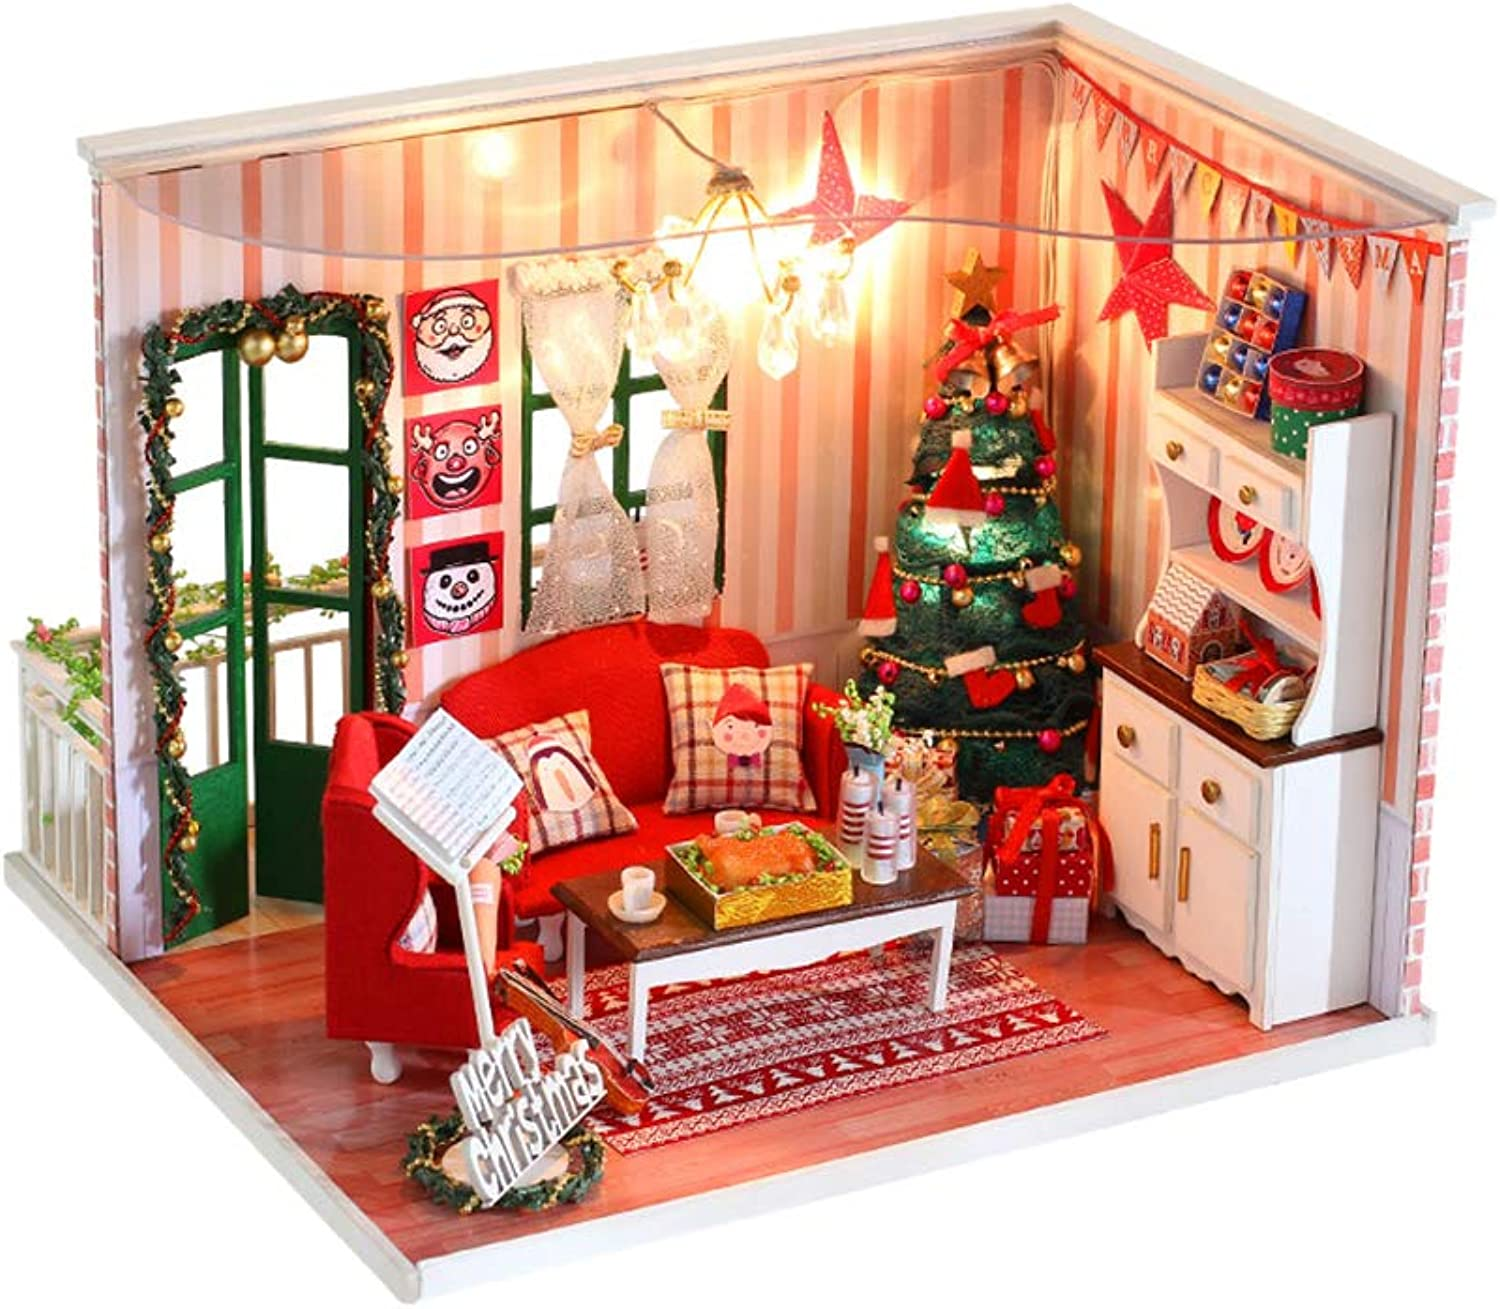 STOBOK Christmas Dollhouse Miniature DIY House Kit Model with Furniture